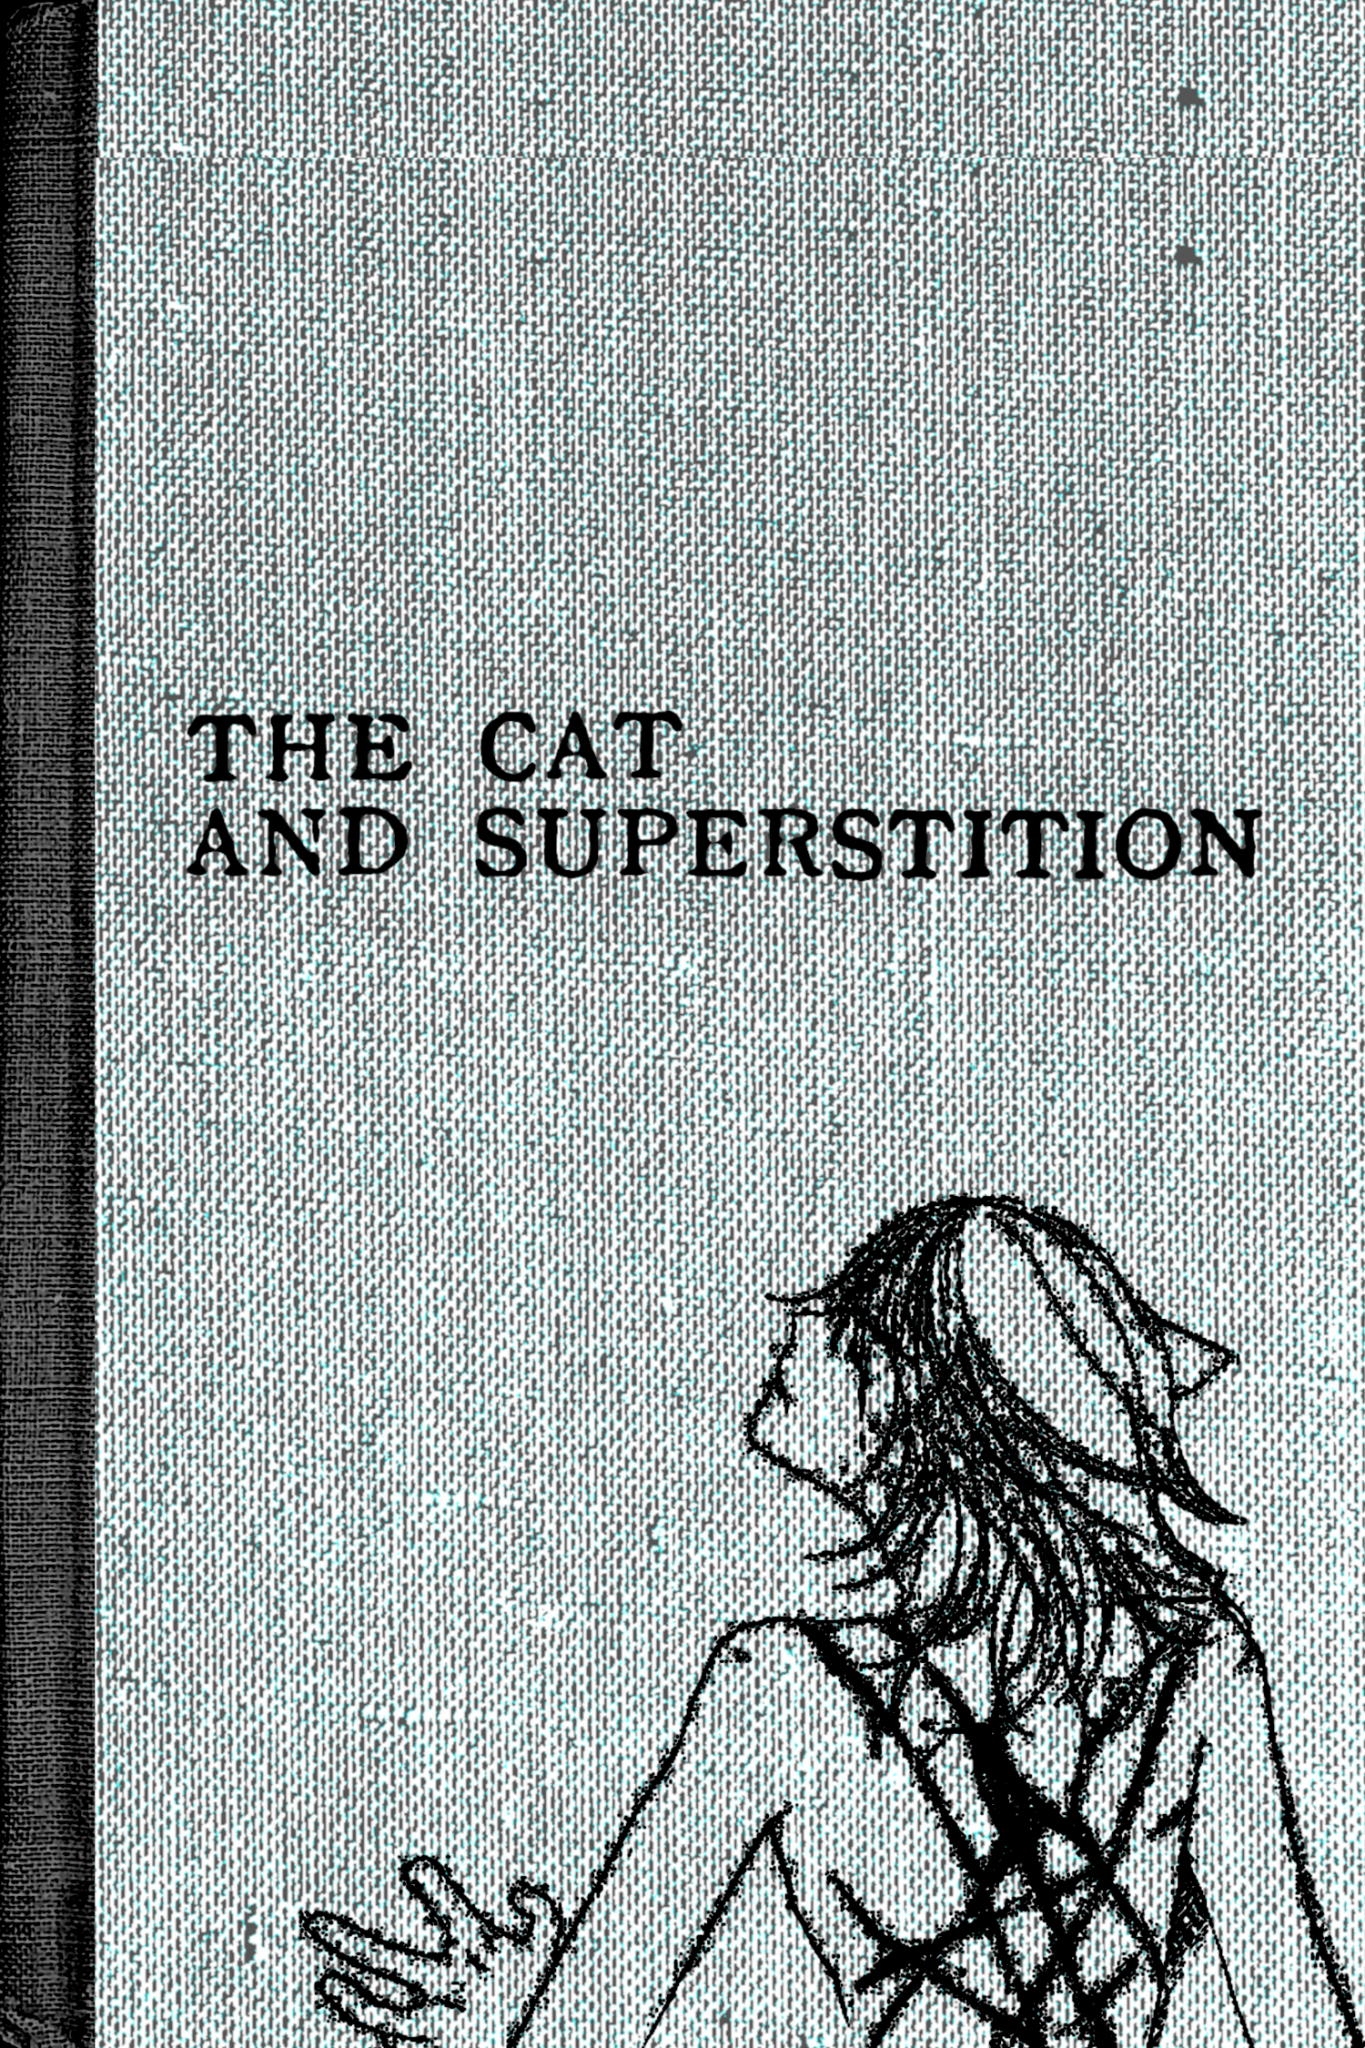 You are currently viewing The Cat And Superstition by Catboy Church